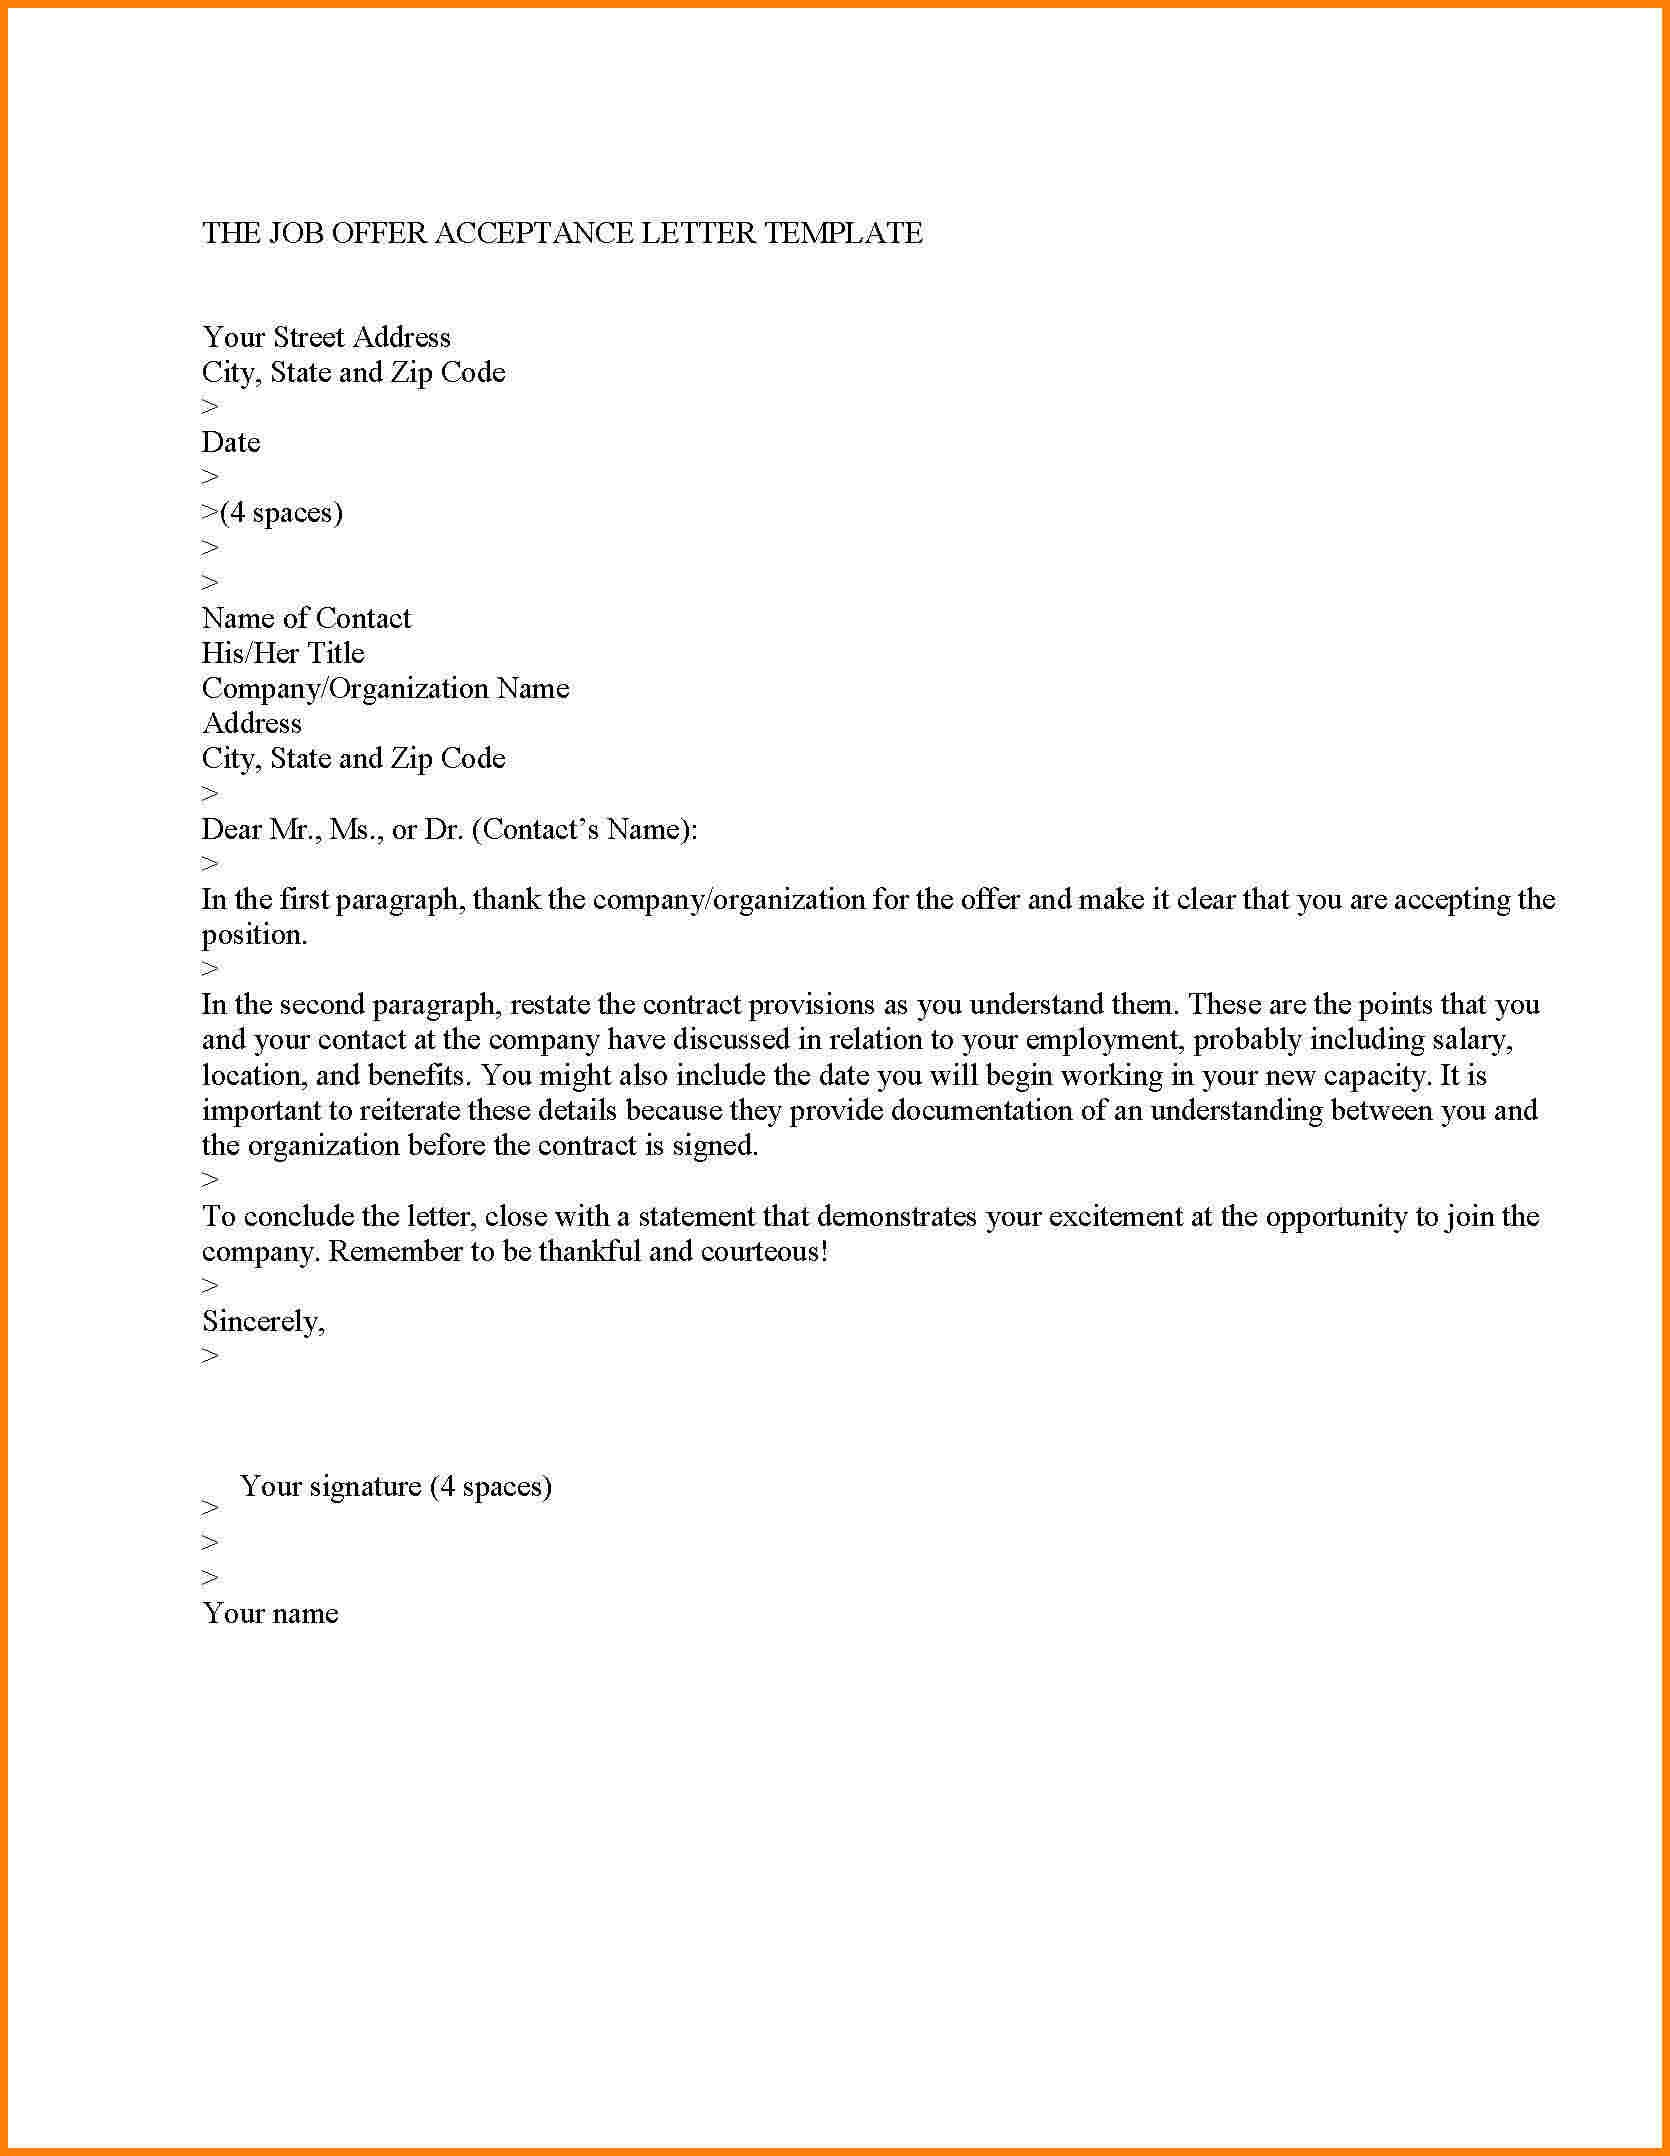 Employment Counter Offer Letter Template - Ideas Of Offer Letter Templates In Doc 50 Free Word Pdf Documents